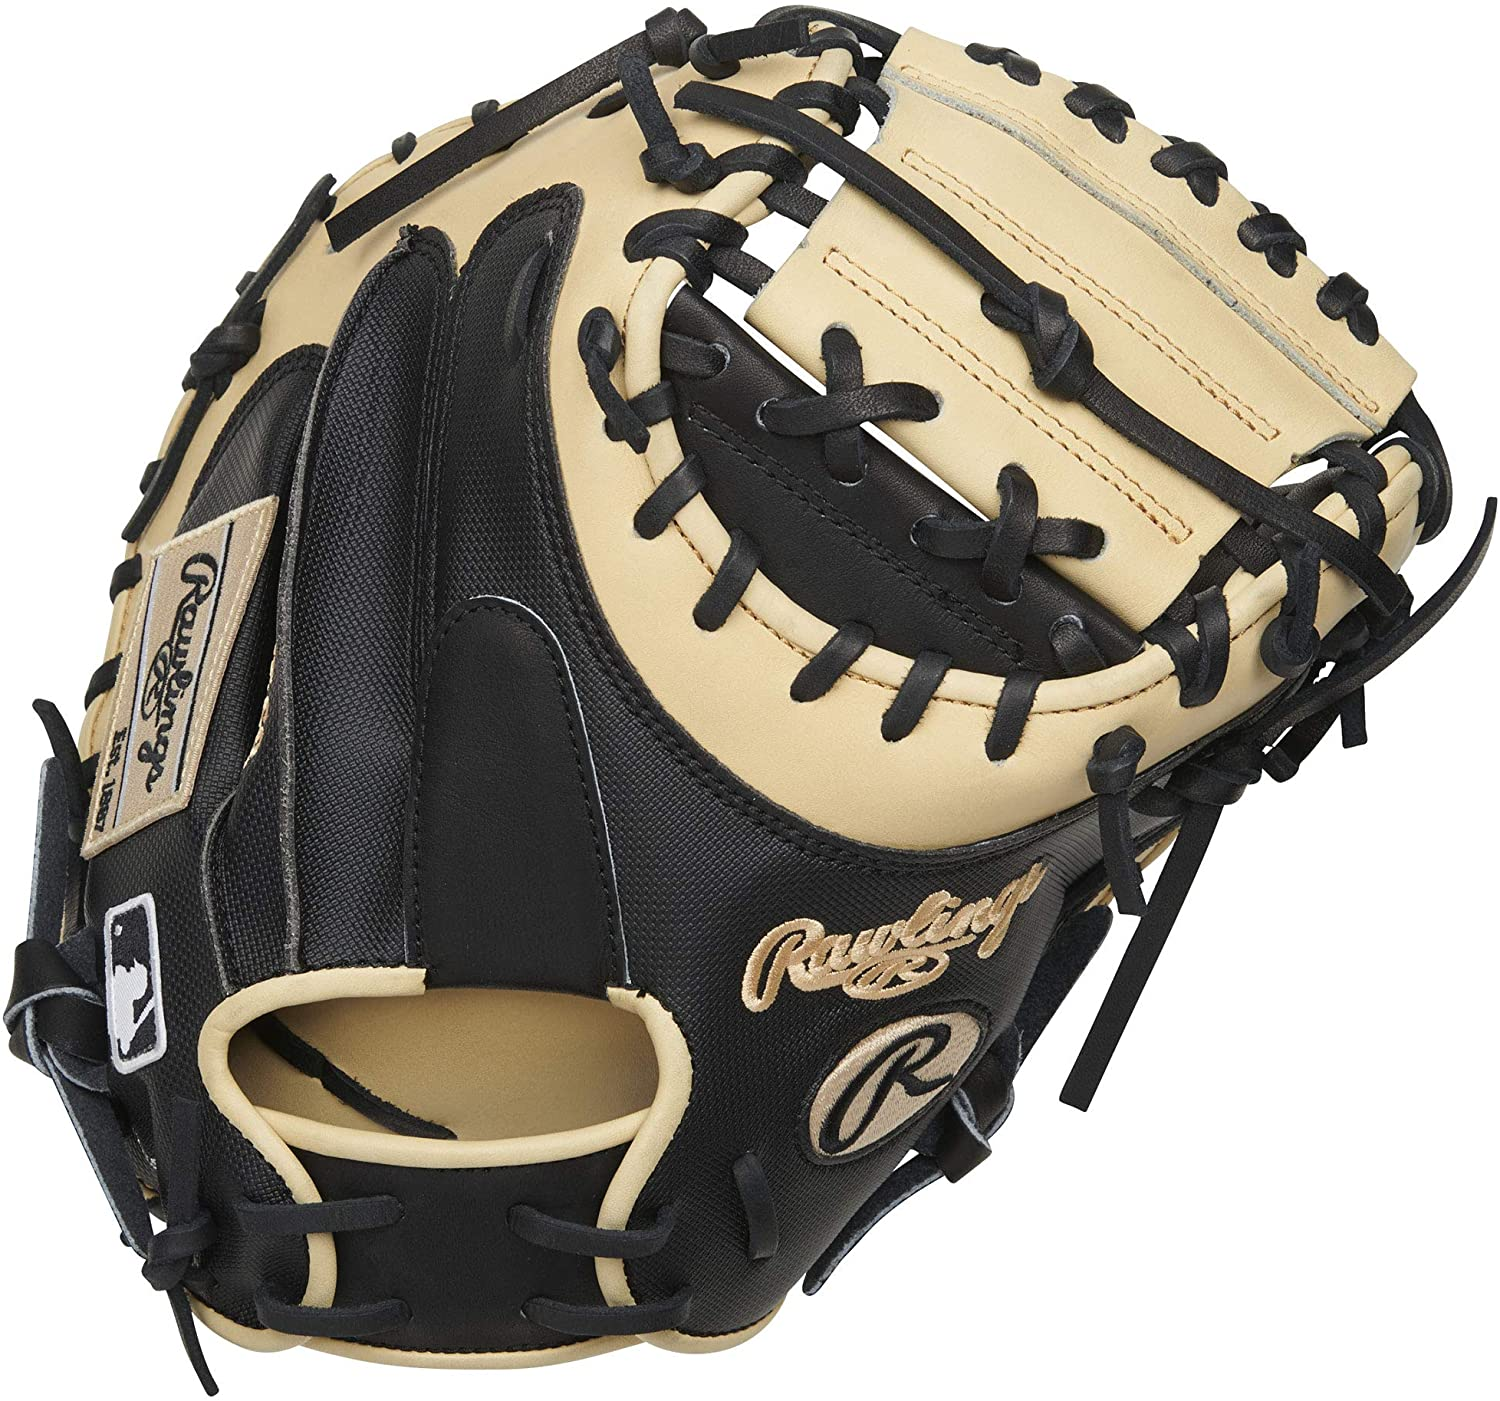 rawlings-heart-of-hide-34-catchers-mitt-y-molina-right-hand-throw PROYM4BC-RightHandThrow  083321702341 <span>onstructed from Rawlings world-renowned Heart of the Hide steer leather Heart